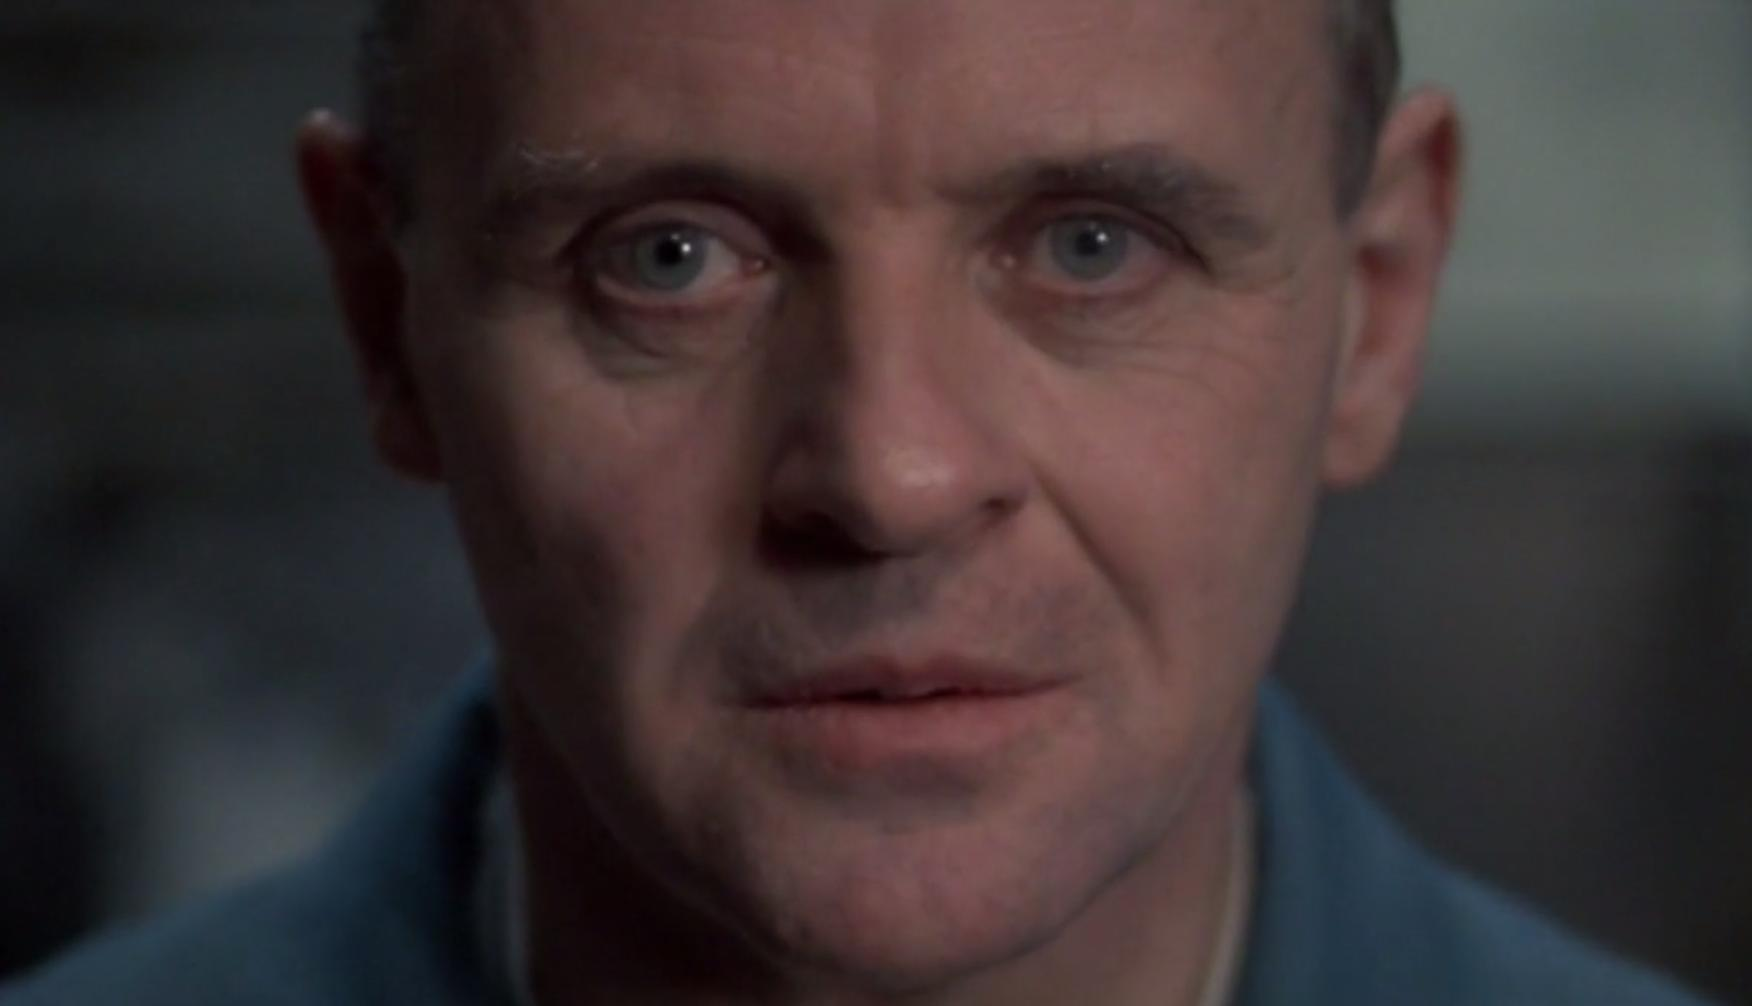 silence of the lambs essay best modern noir a visual essay images jodie foster and anthony hopkins in the · the silence of the lambs